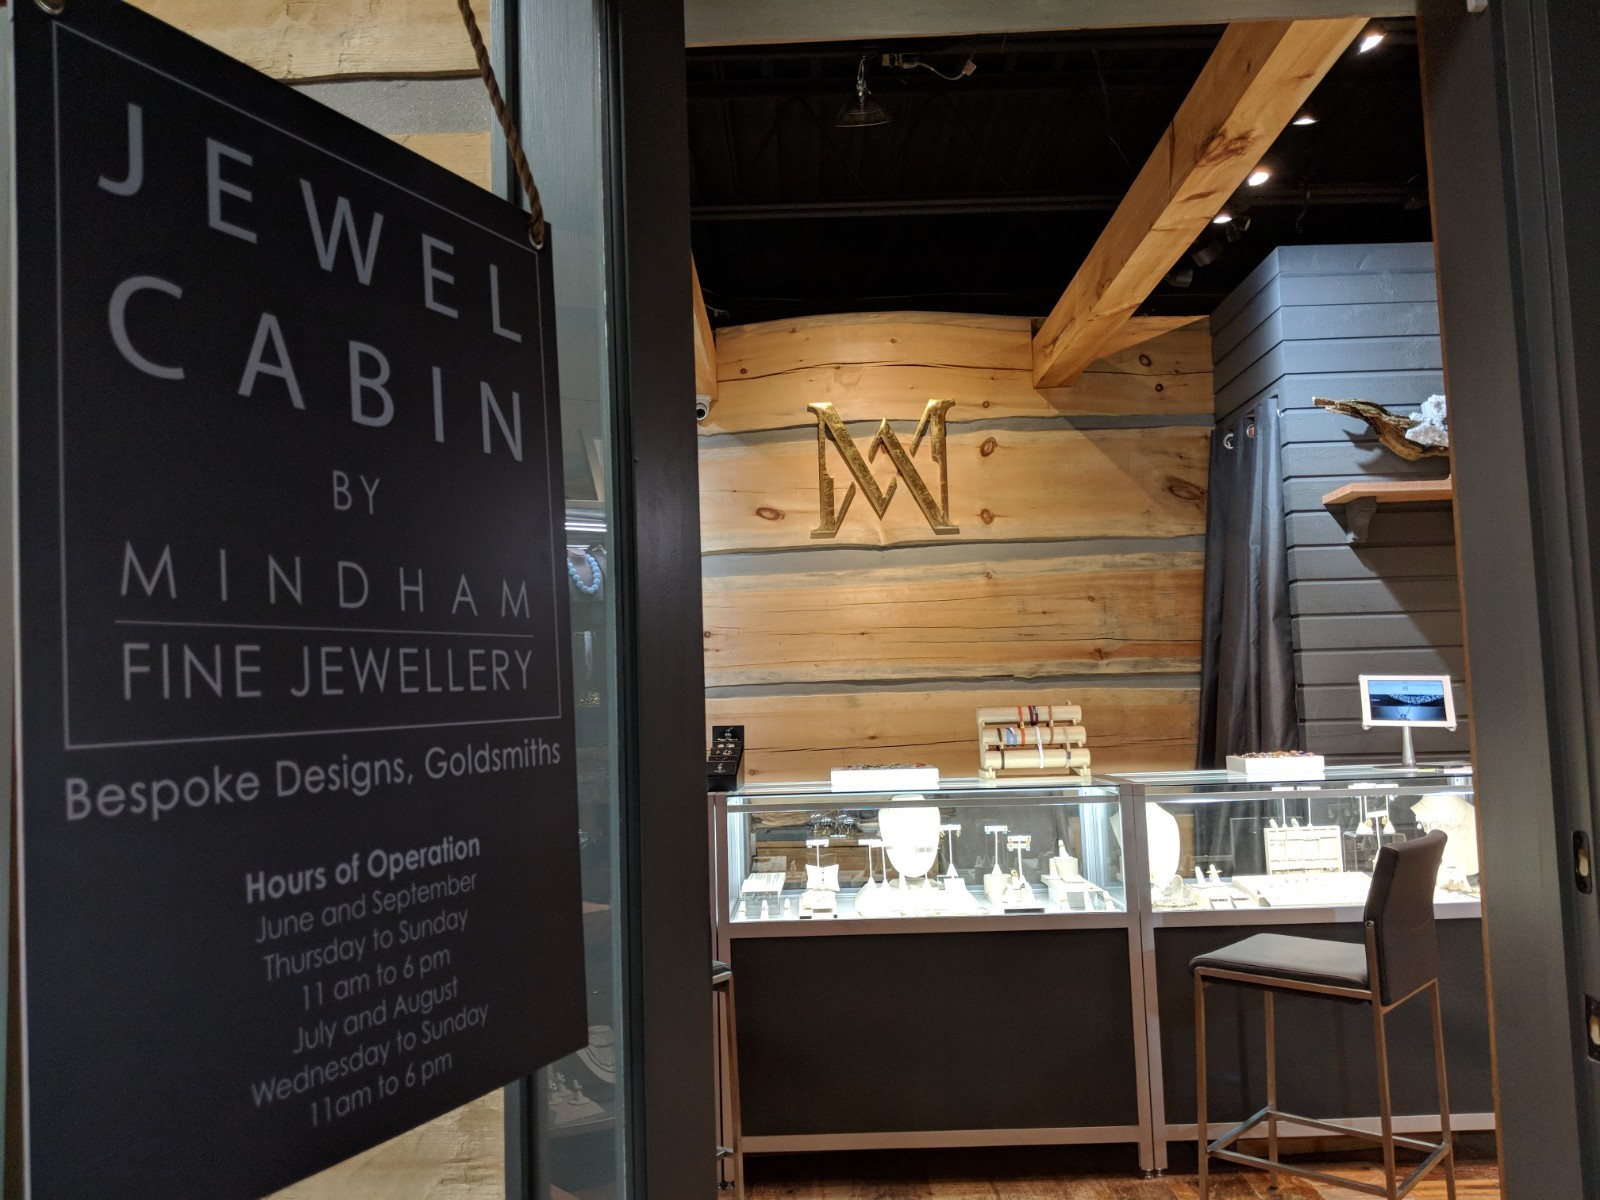 Mindham Fine Jewellery JC Interior 4.jpg